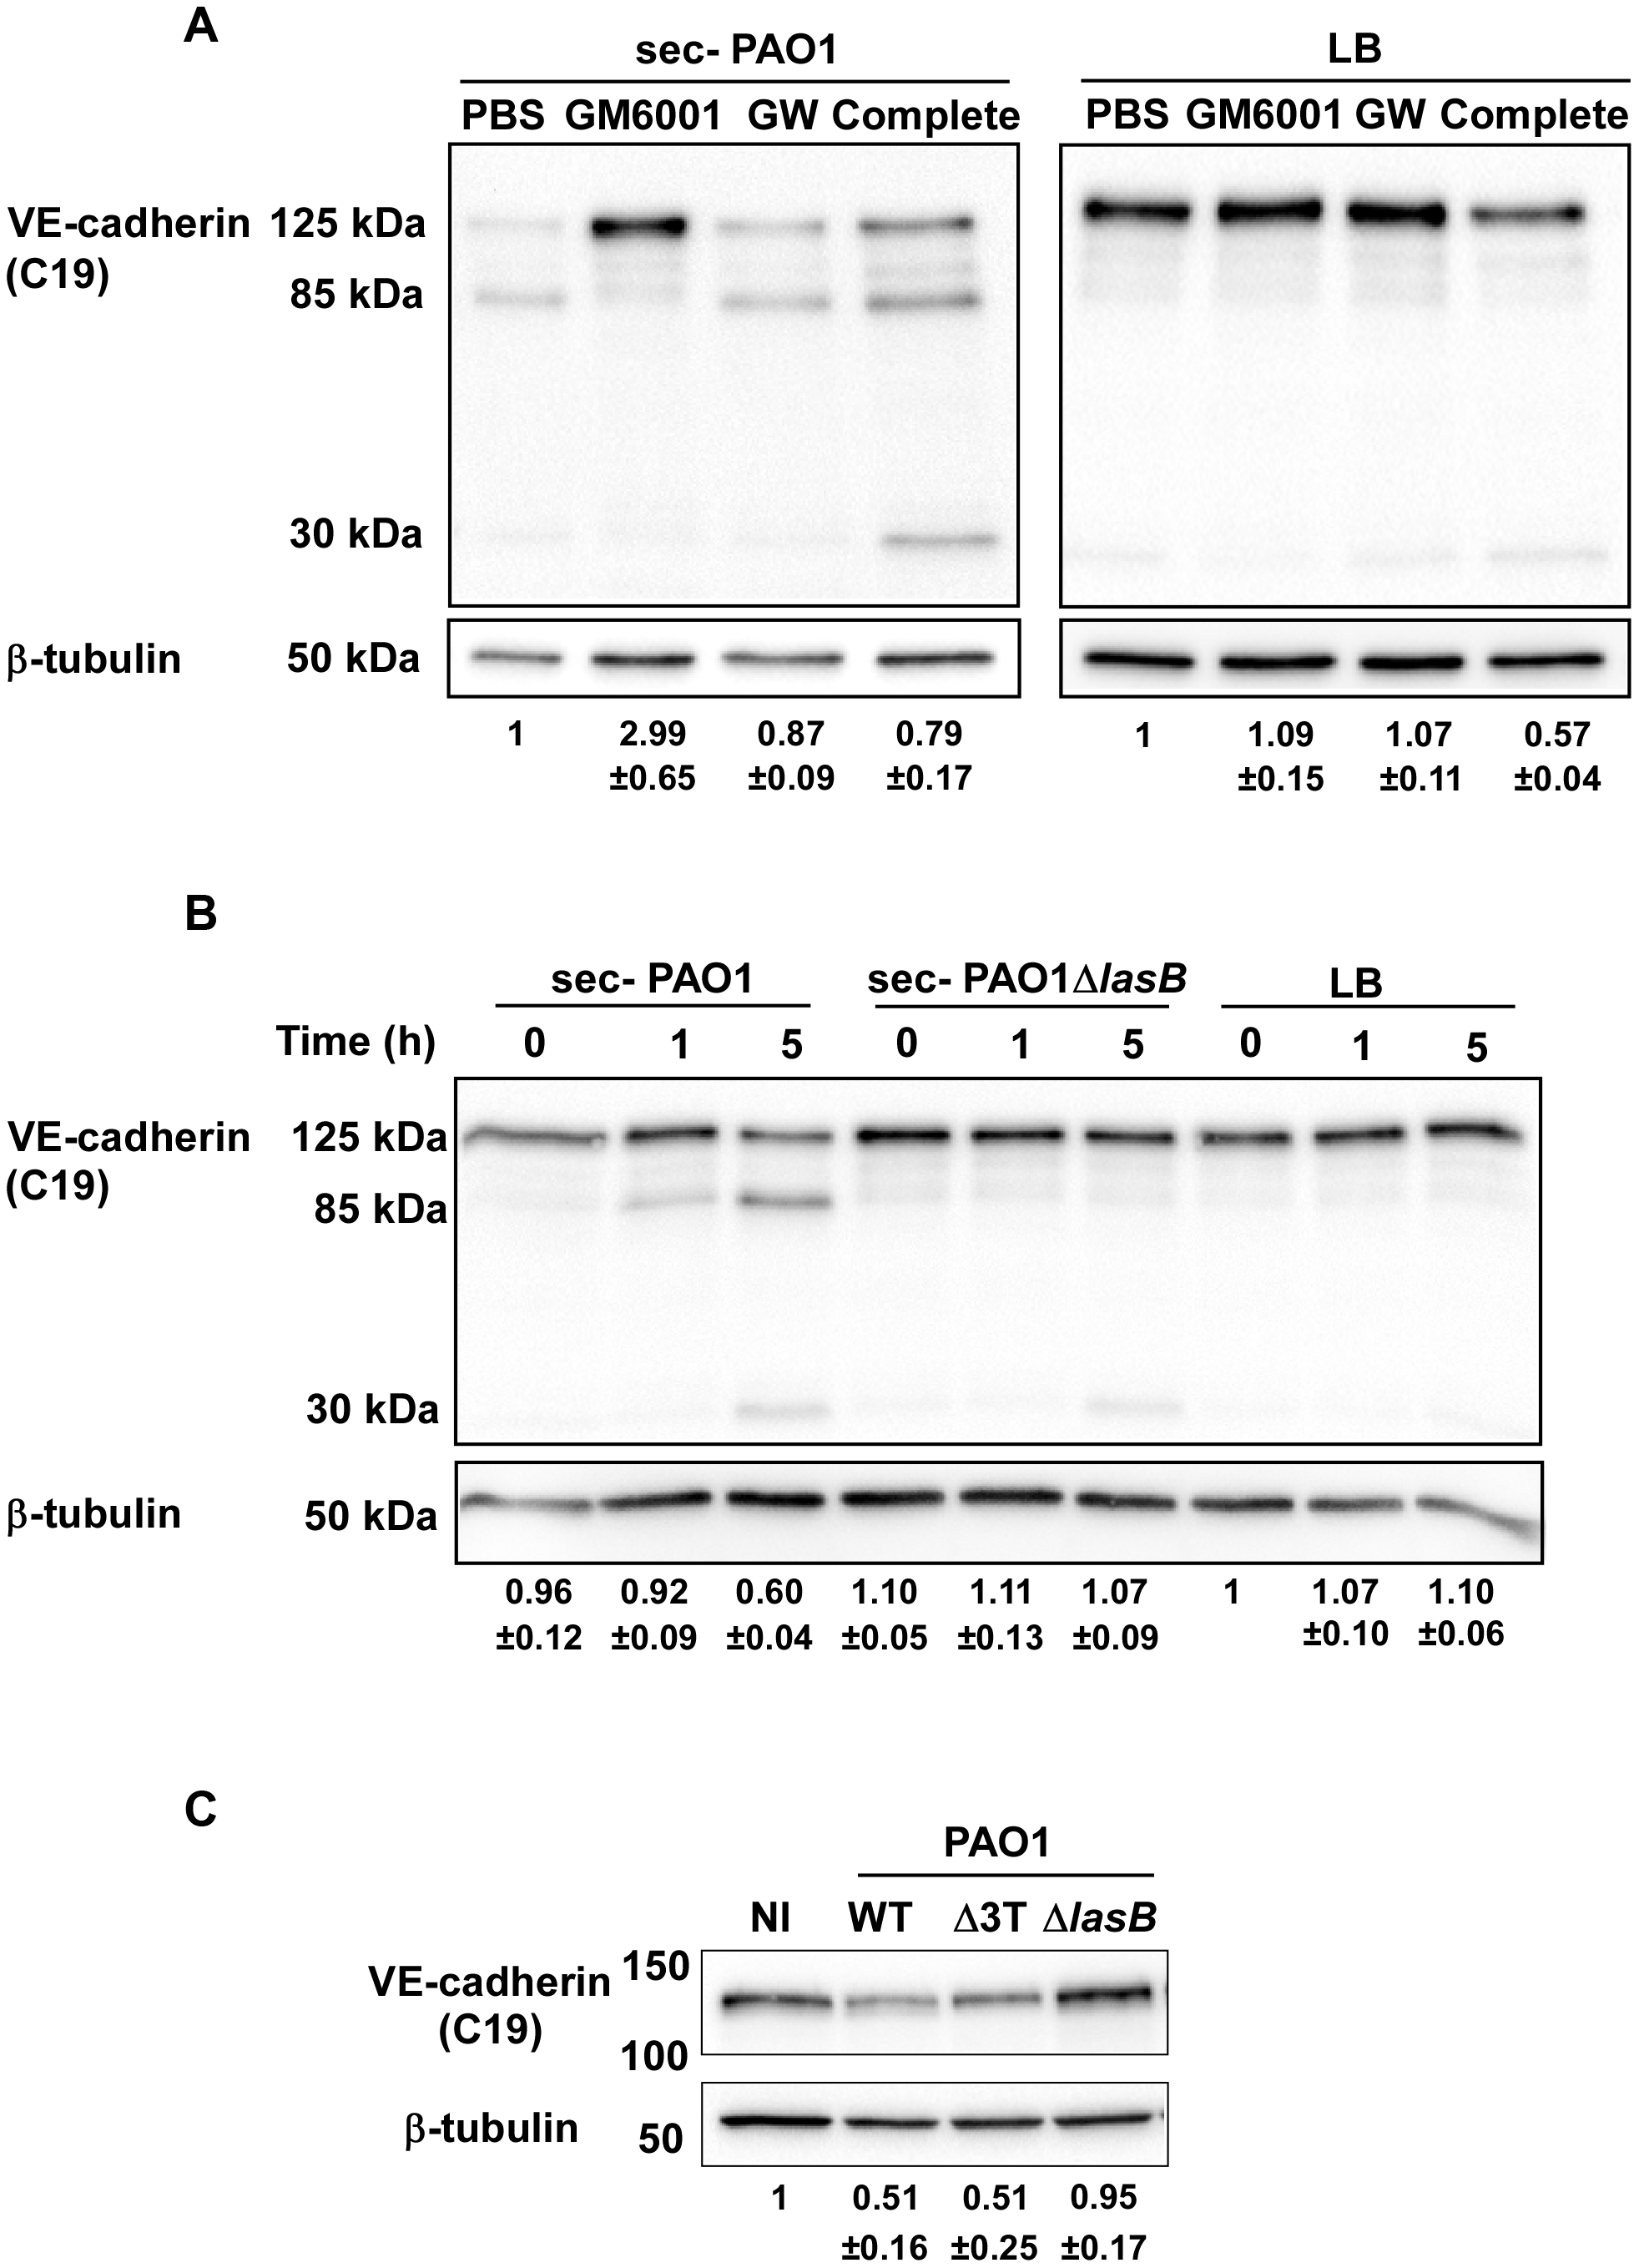 LasB protease is required for VE-cadherin cleavage.